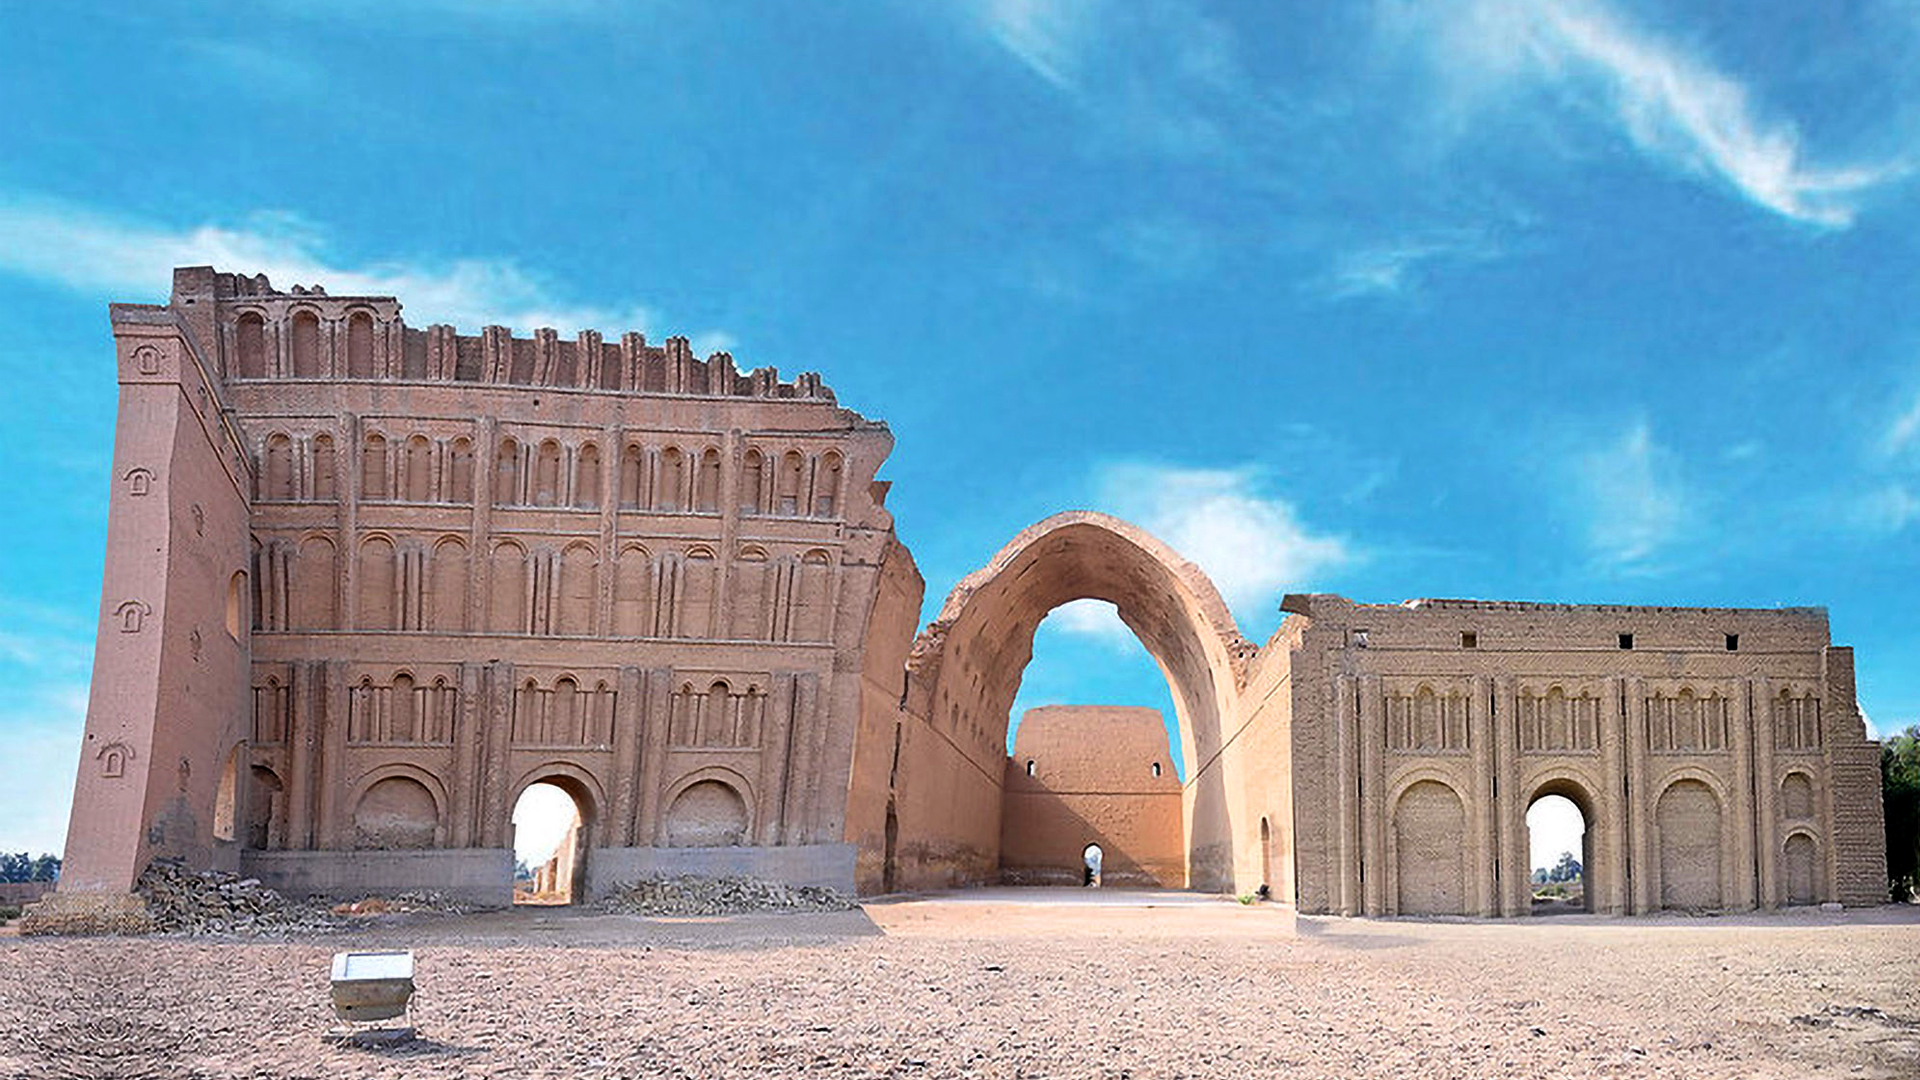 Wonder Lost: Iraq's Arch Of Ctesiphon Could Go Extinct After Authorities Neglect It